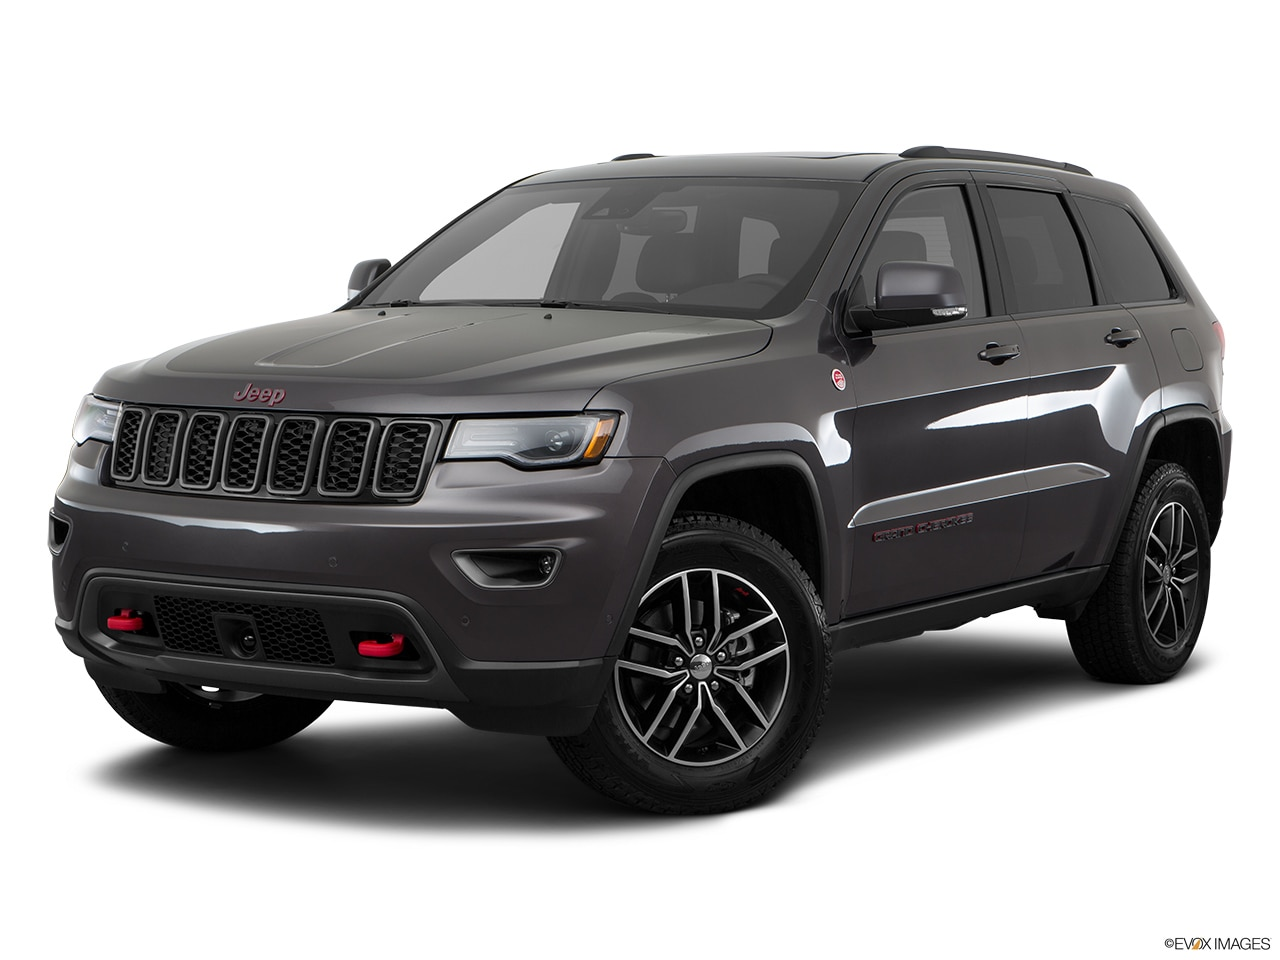 Superior Elmwood Chrysler Dodge Jeep RAM Has Great Lease Deals On Jeep Grand Cherokee .